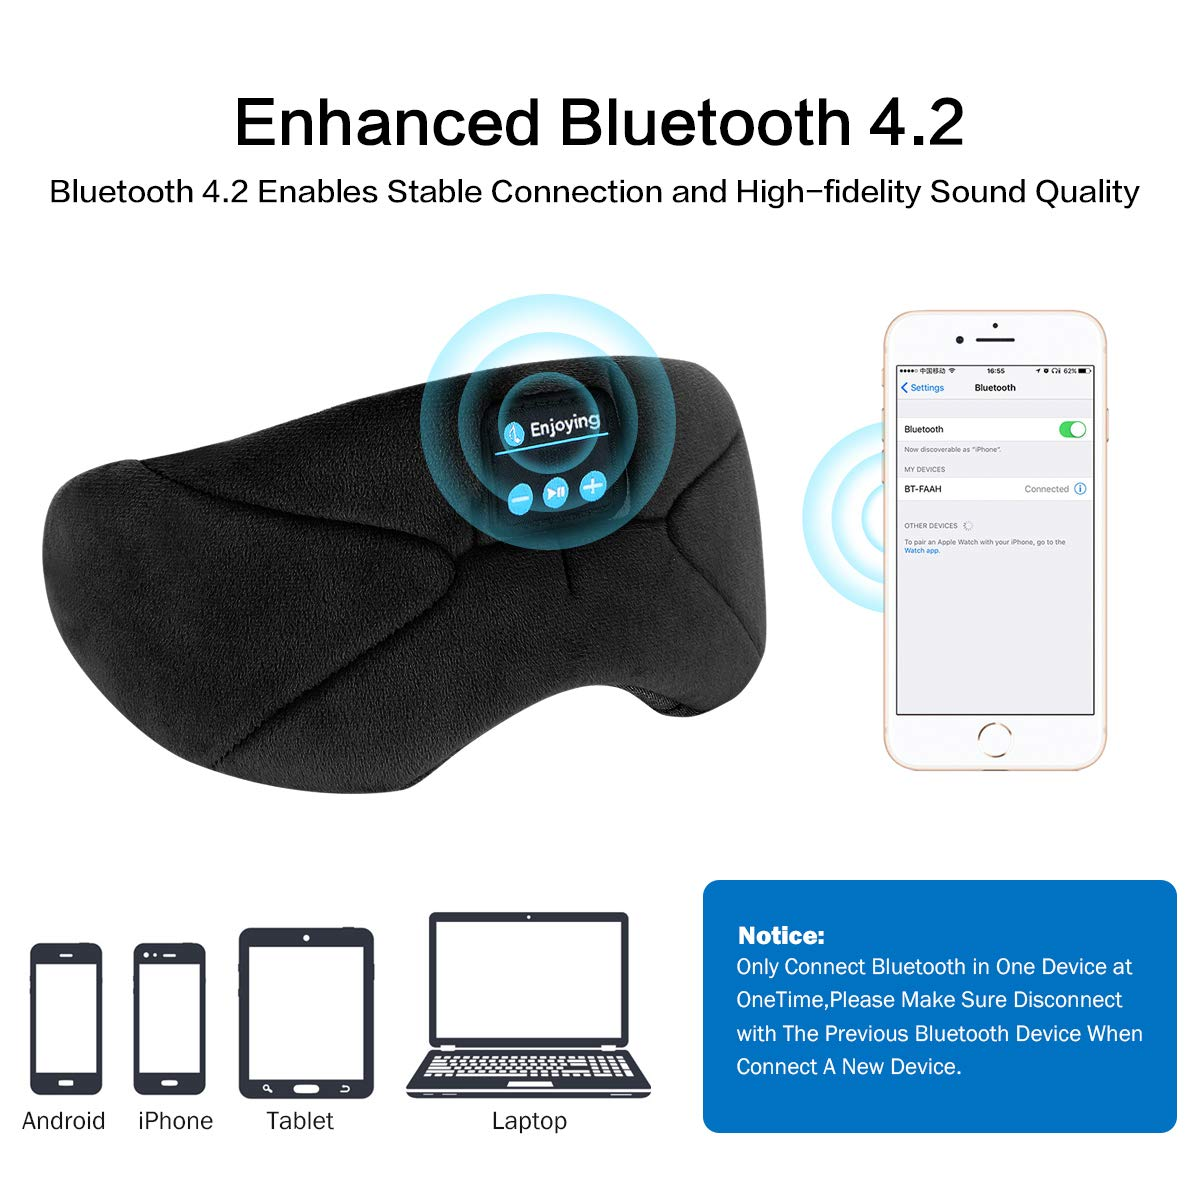 Sleep Headphones Bluetooth, Sleeping Headphone Wireless Eye Mask Headset Music Eye Shades Built-in Speakers Microphone Handsfree Bedphones Travel Headband Sleep Mask for Women Men Kids